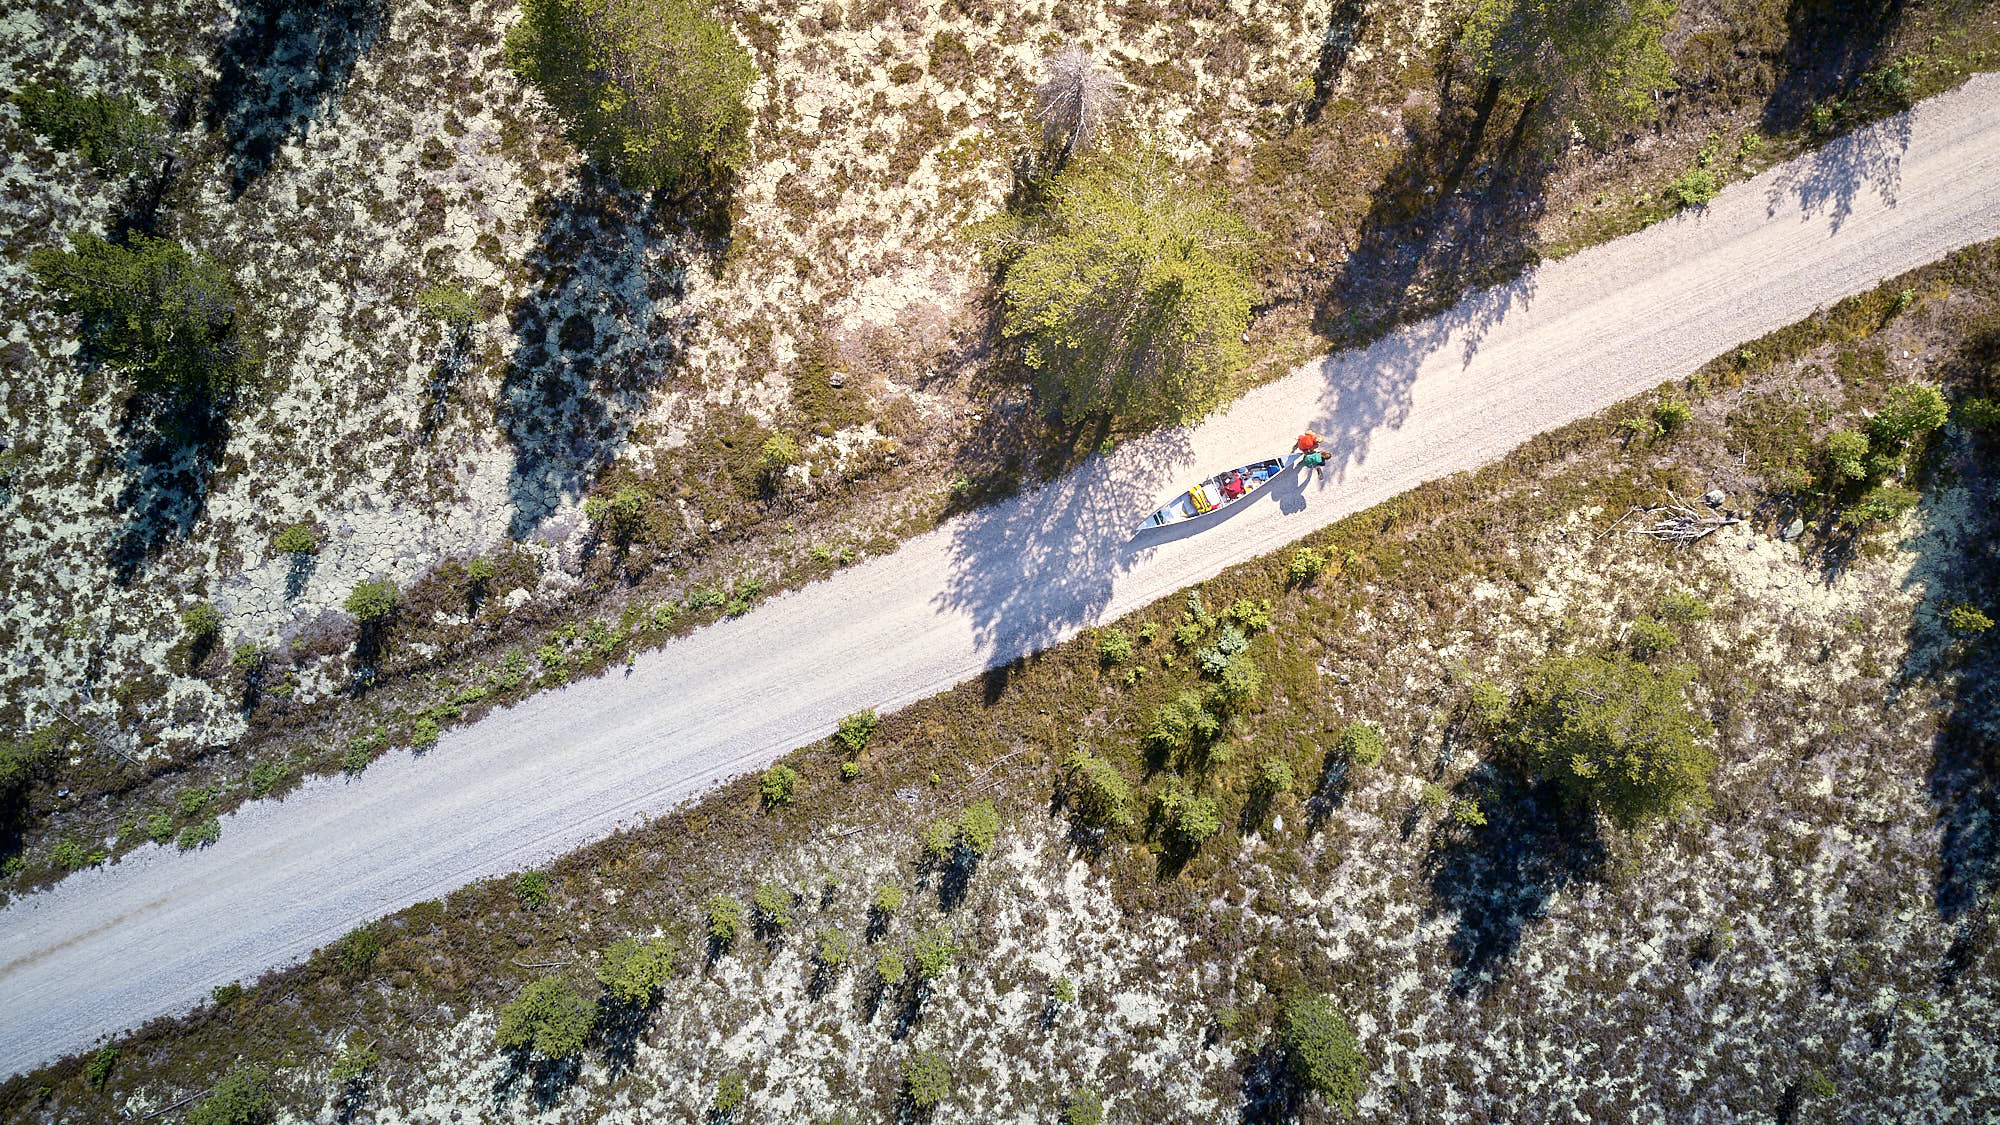 Aerial view of a canoe being pulled on a gravel road in Norway